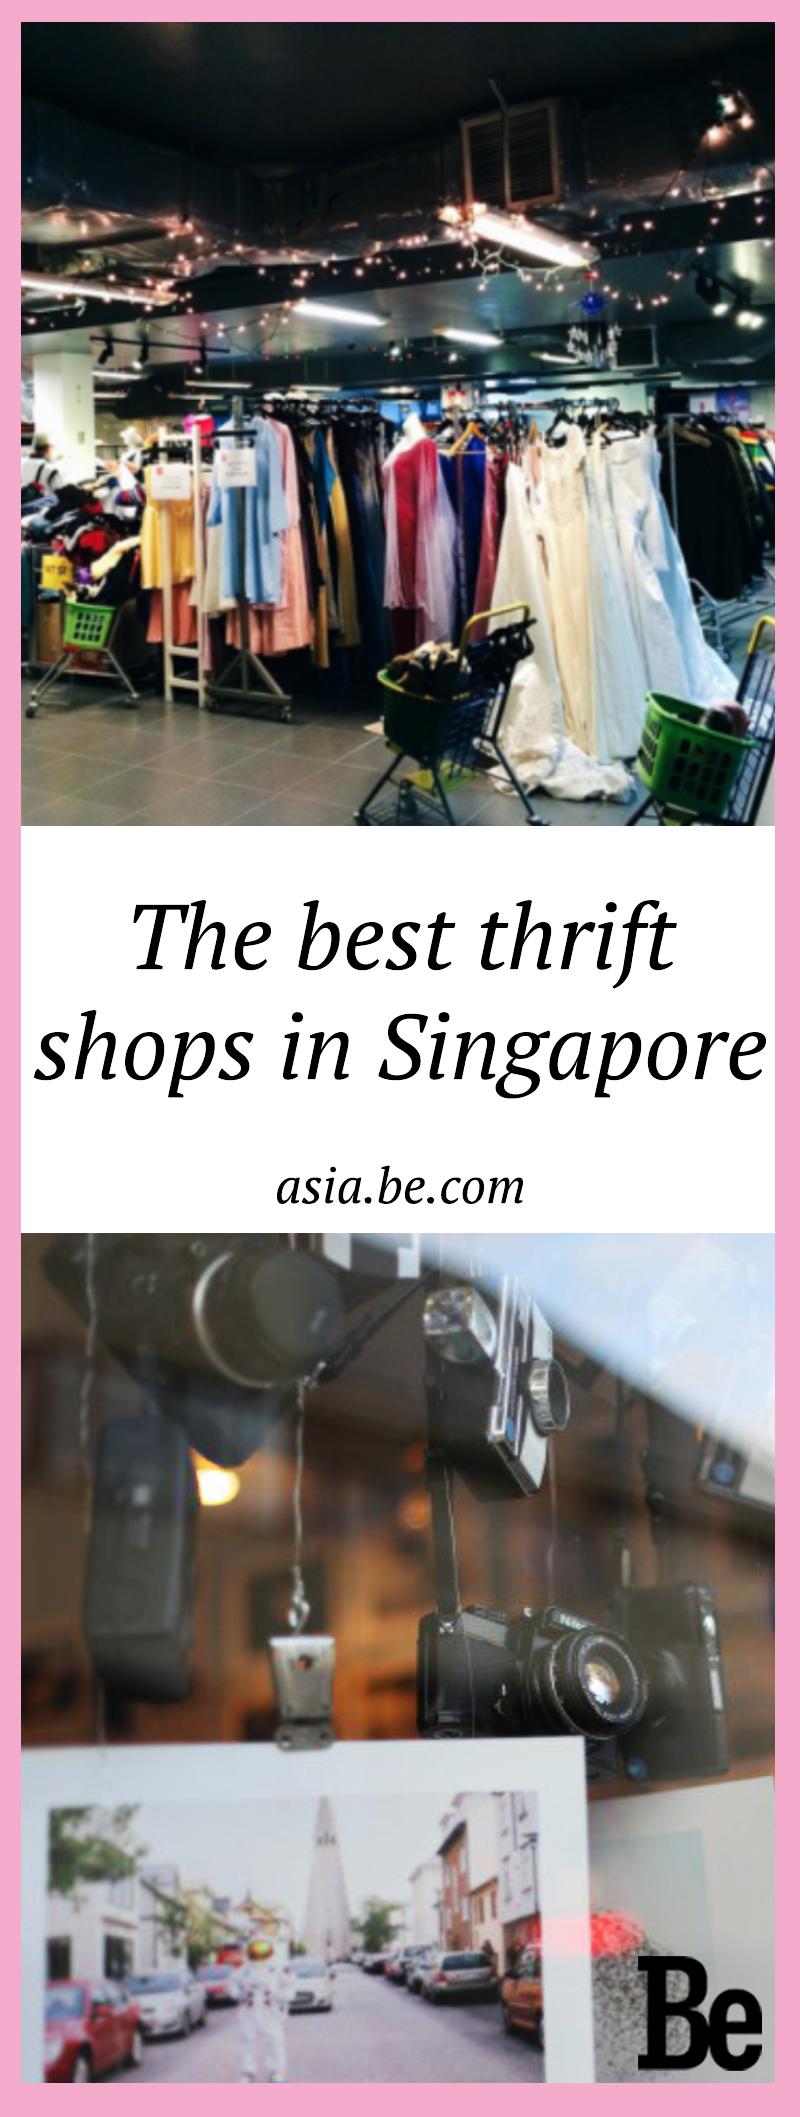 The Best thrift shops in Singapore Rumah